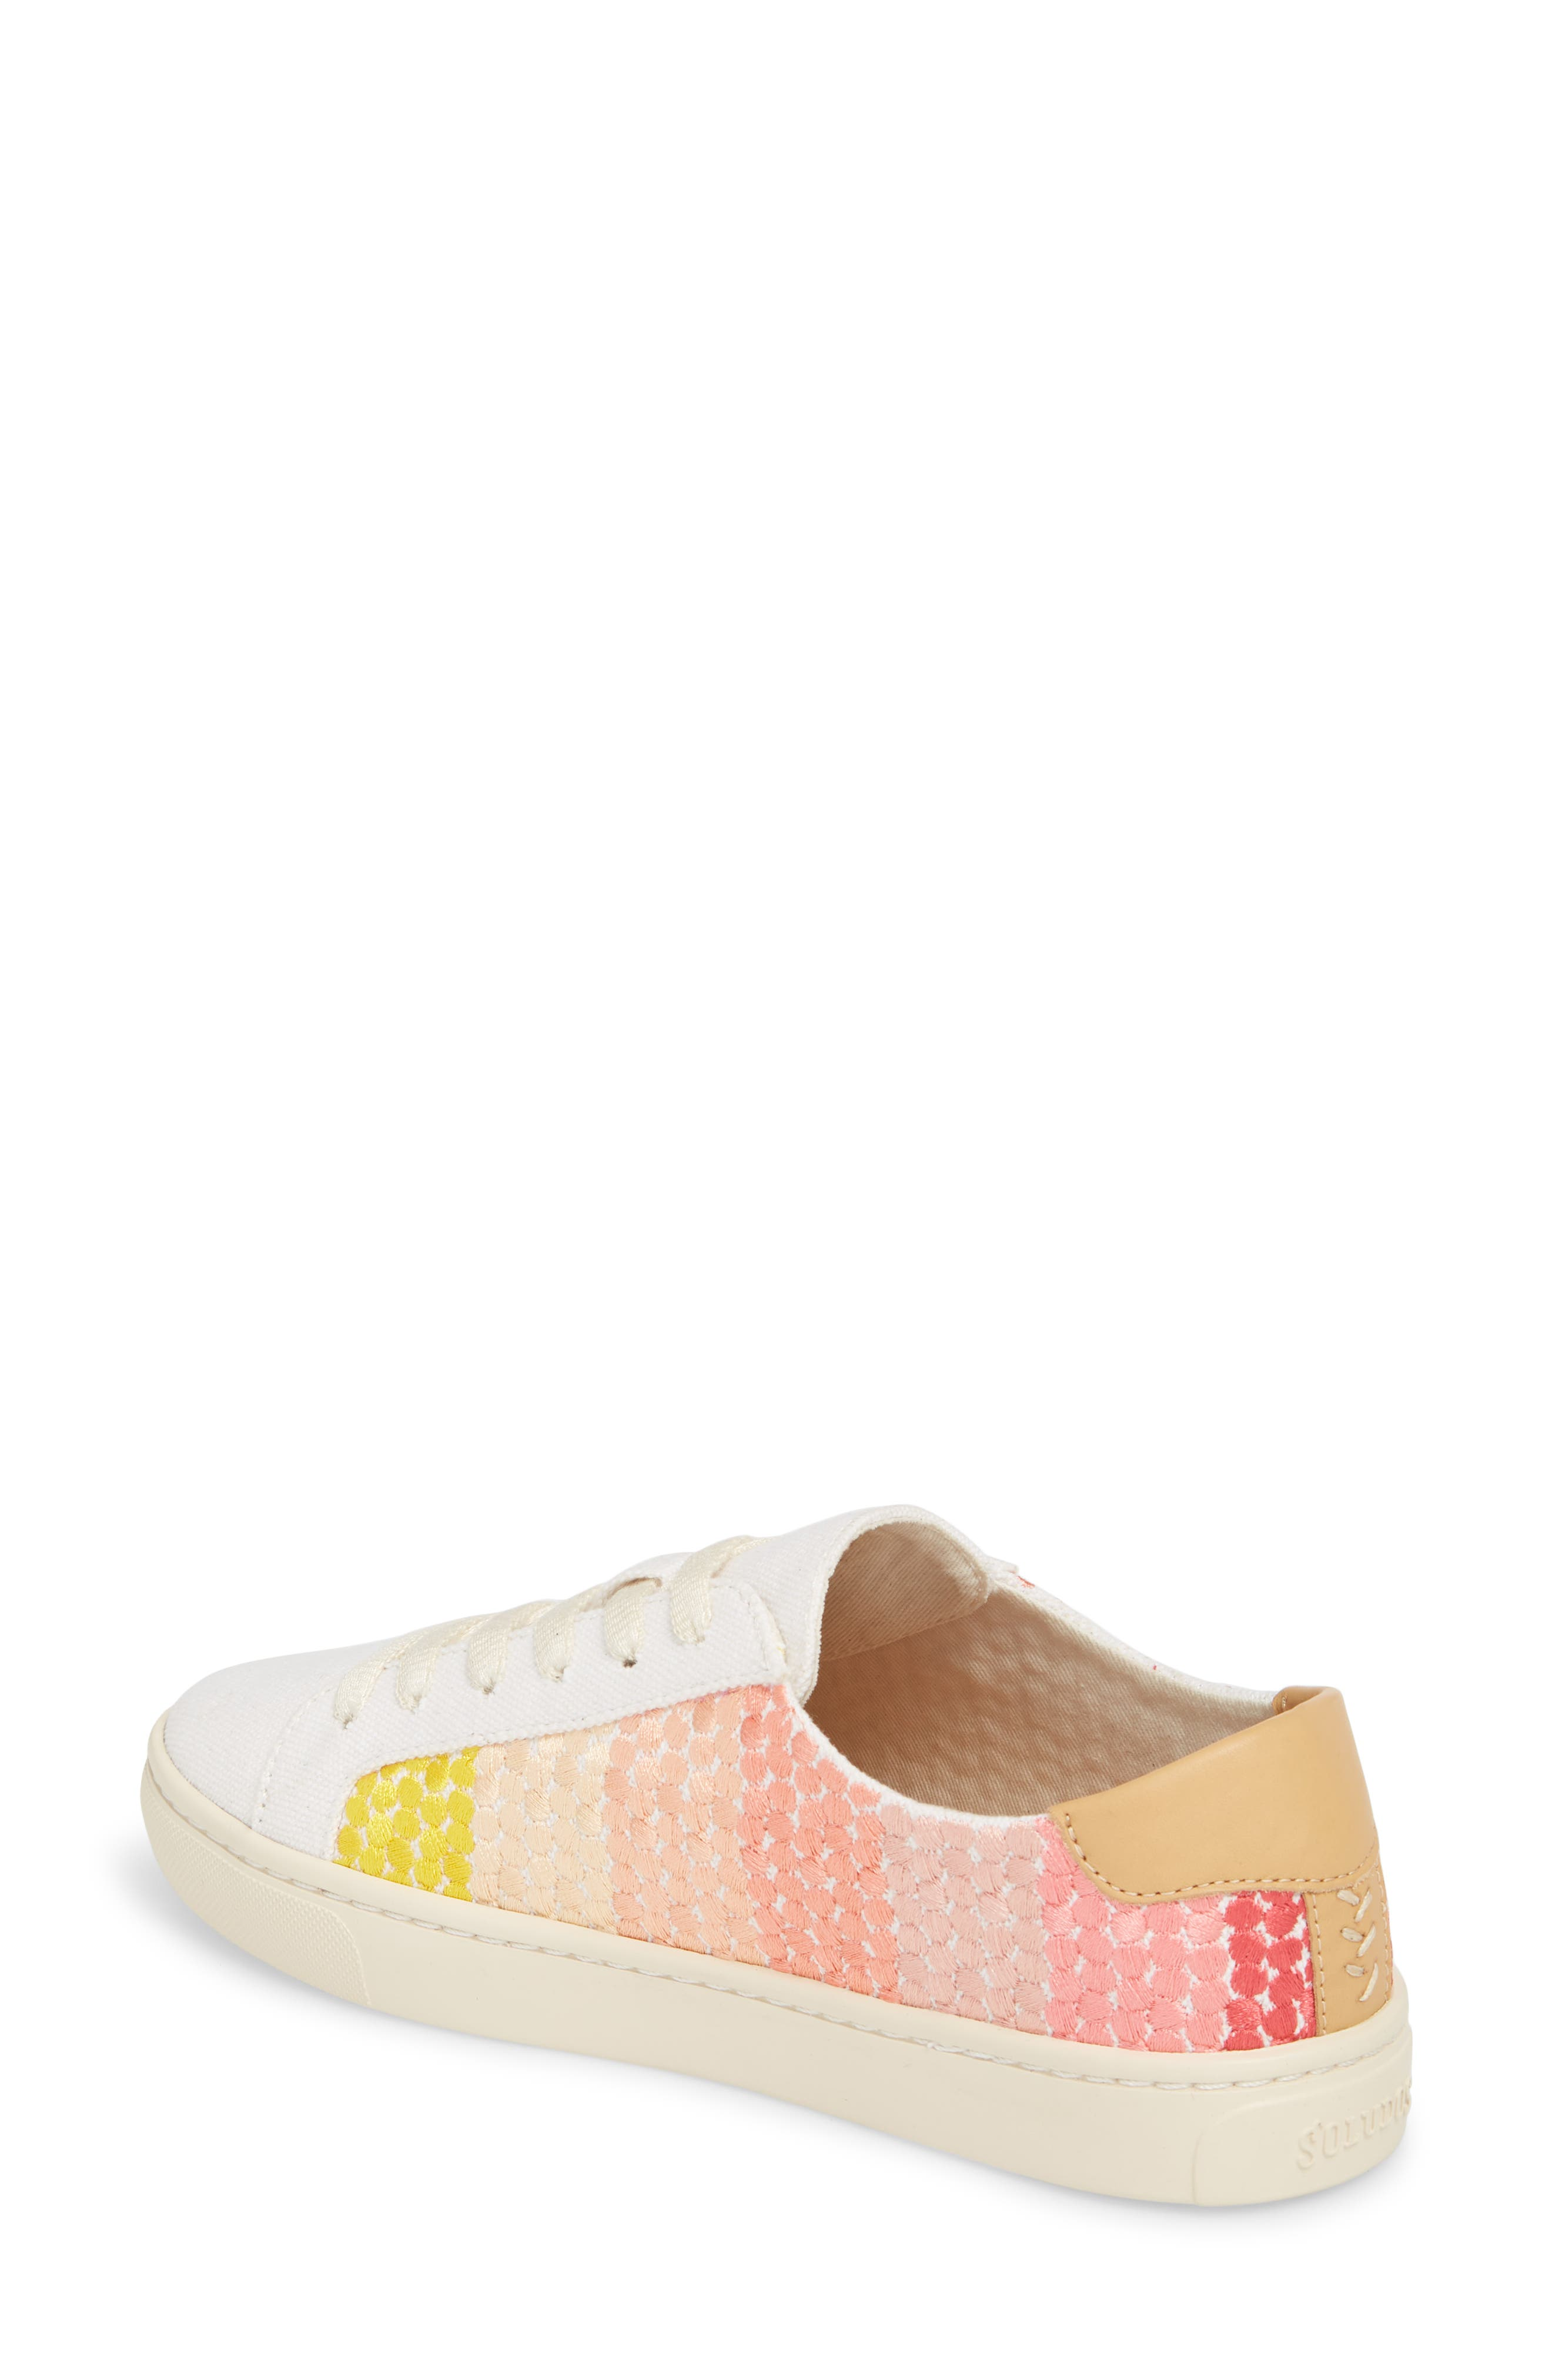 Embroidered Ombre Sneaker,                             Alternate thumbnail 2, color,                             Sunshine